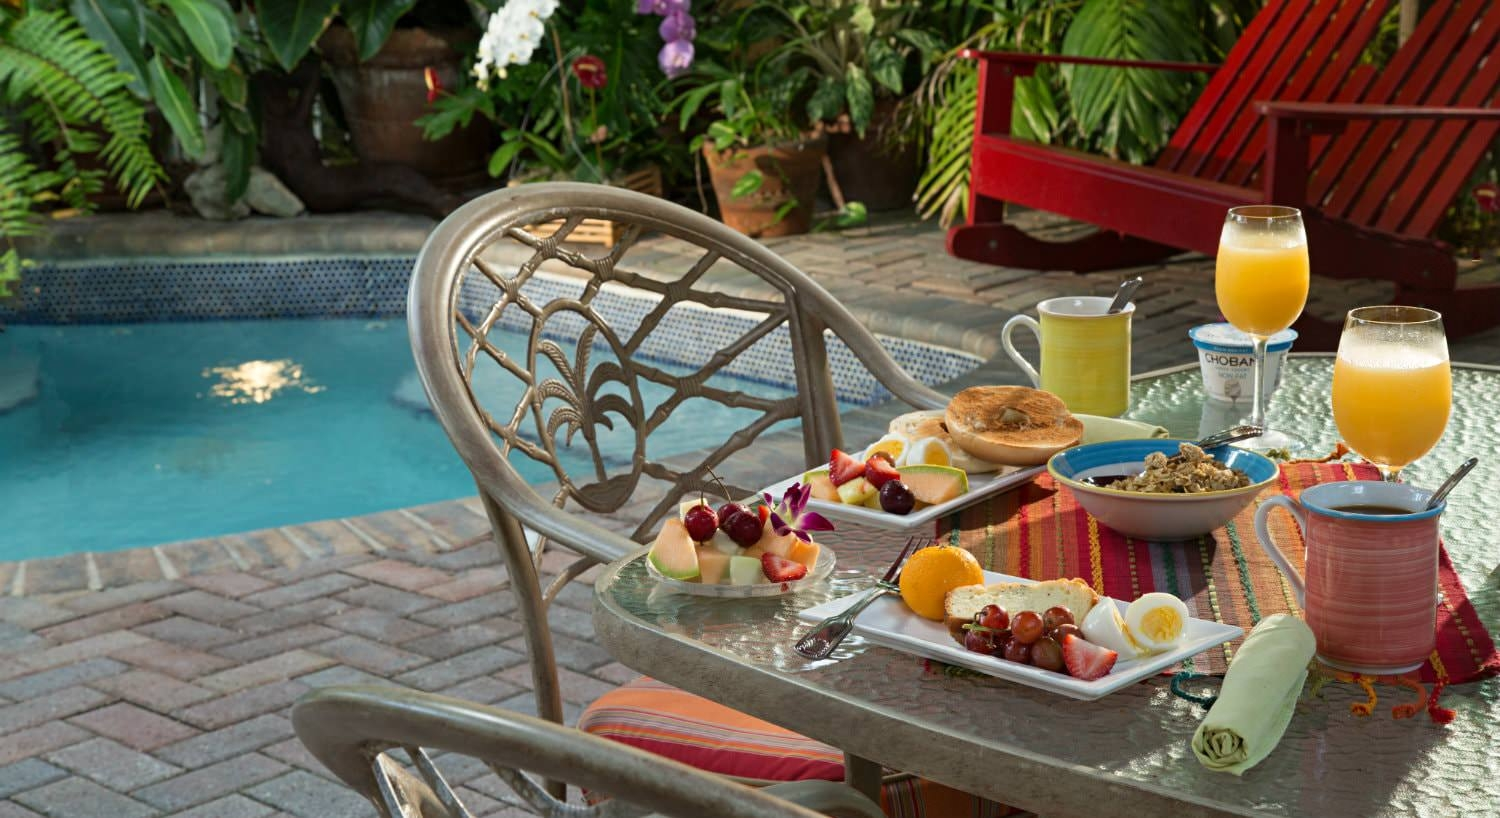 Glass table with breakfast food with red chairs and pool in background